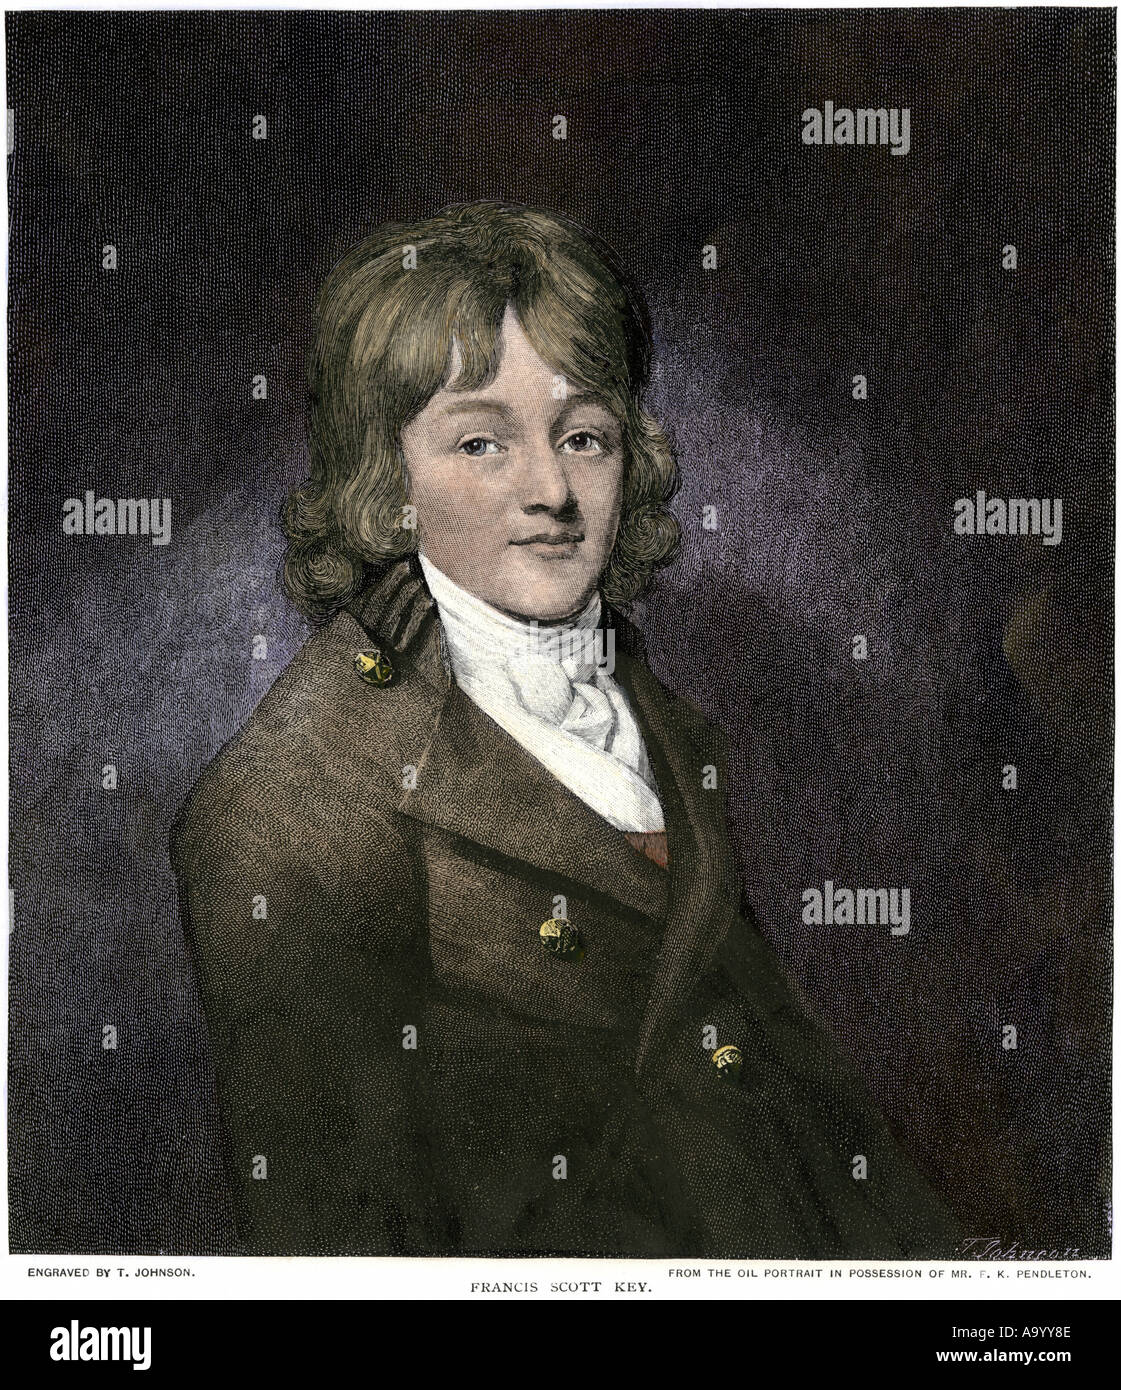 Francis Scott Key author of the Star Spangled Banner. Hand-colored woodcut - Stock Image